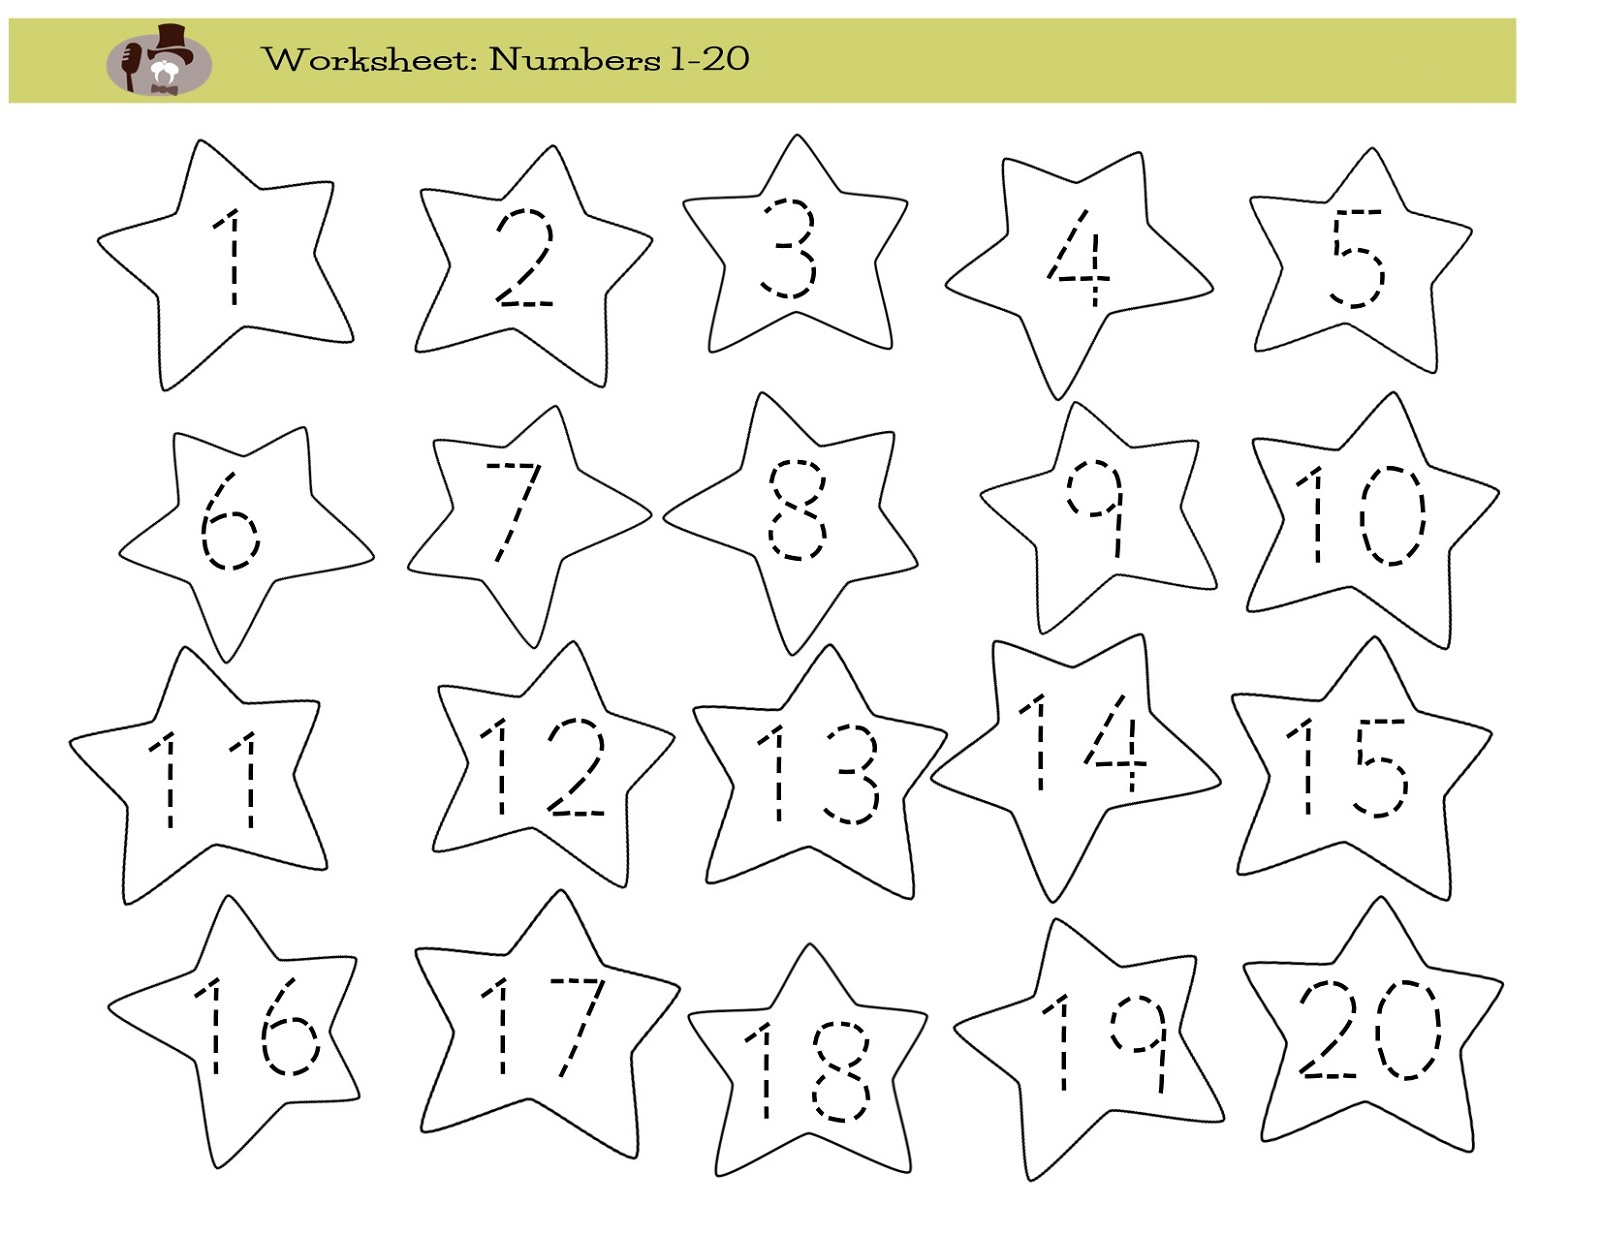 worksheet Number Handwriting Worksheets printable number trace worksheets activity shelter worksheet star